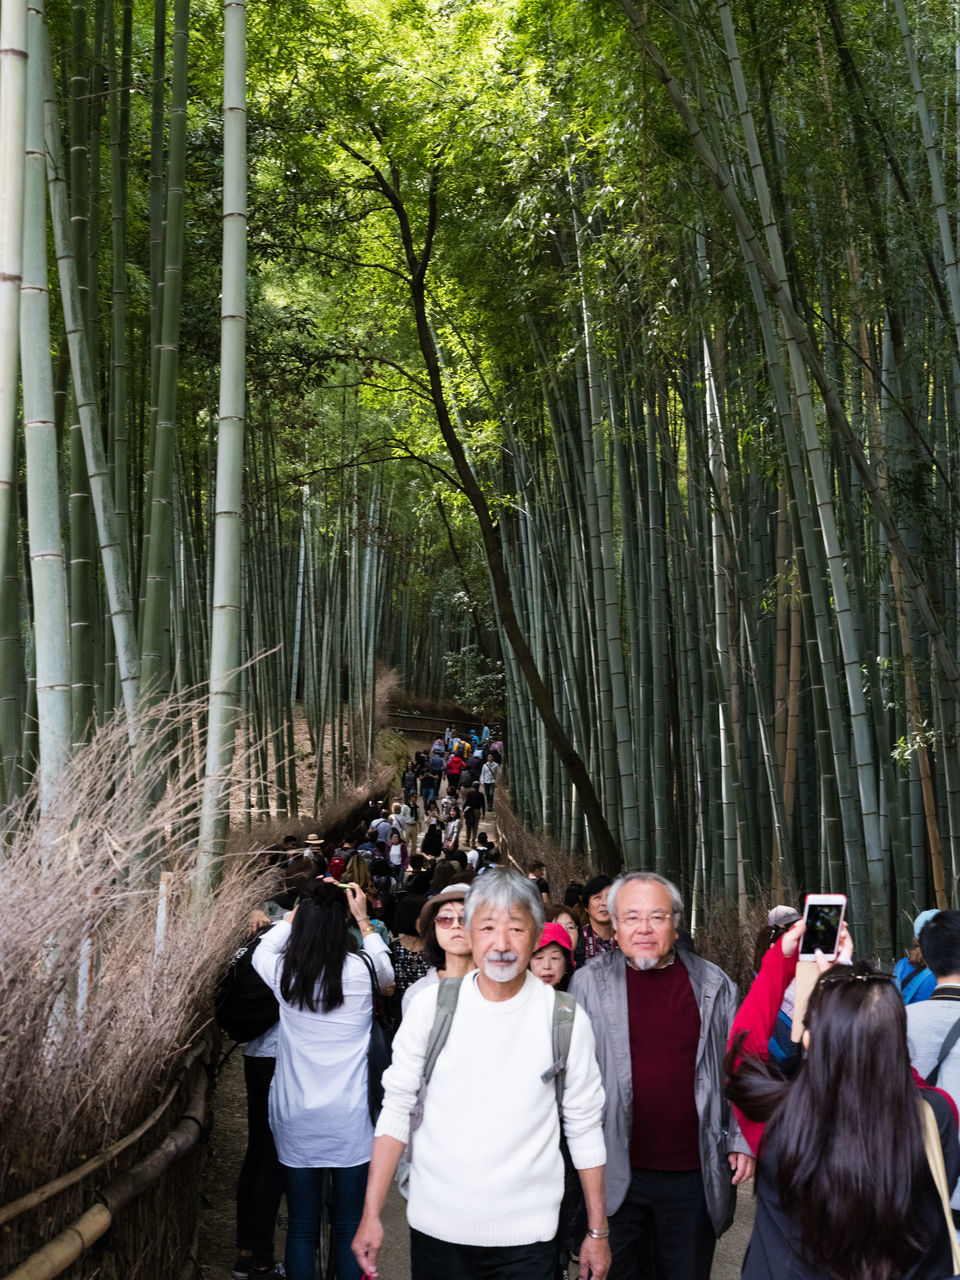 outdoors, tree, forest, senior adult, day, togetherness, looking at camera, young adult, nature, bamboo grove, bamboo - plant, portrait, young women, smiling, real people, women, standing, adult, people, adults only